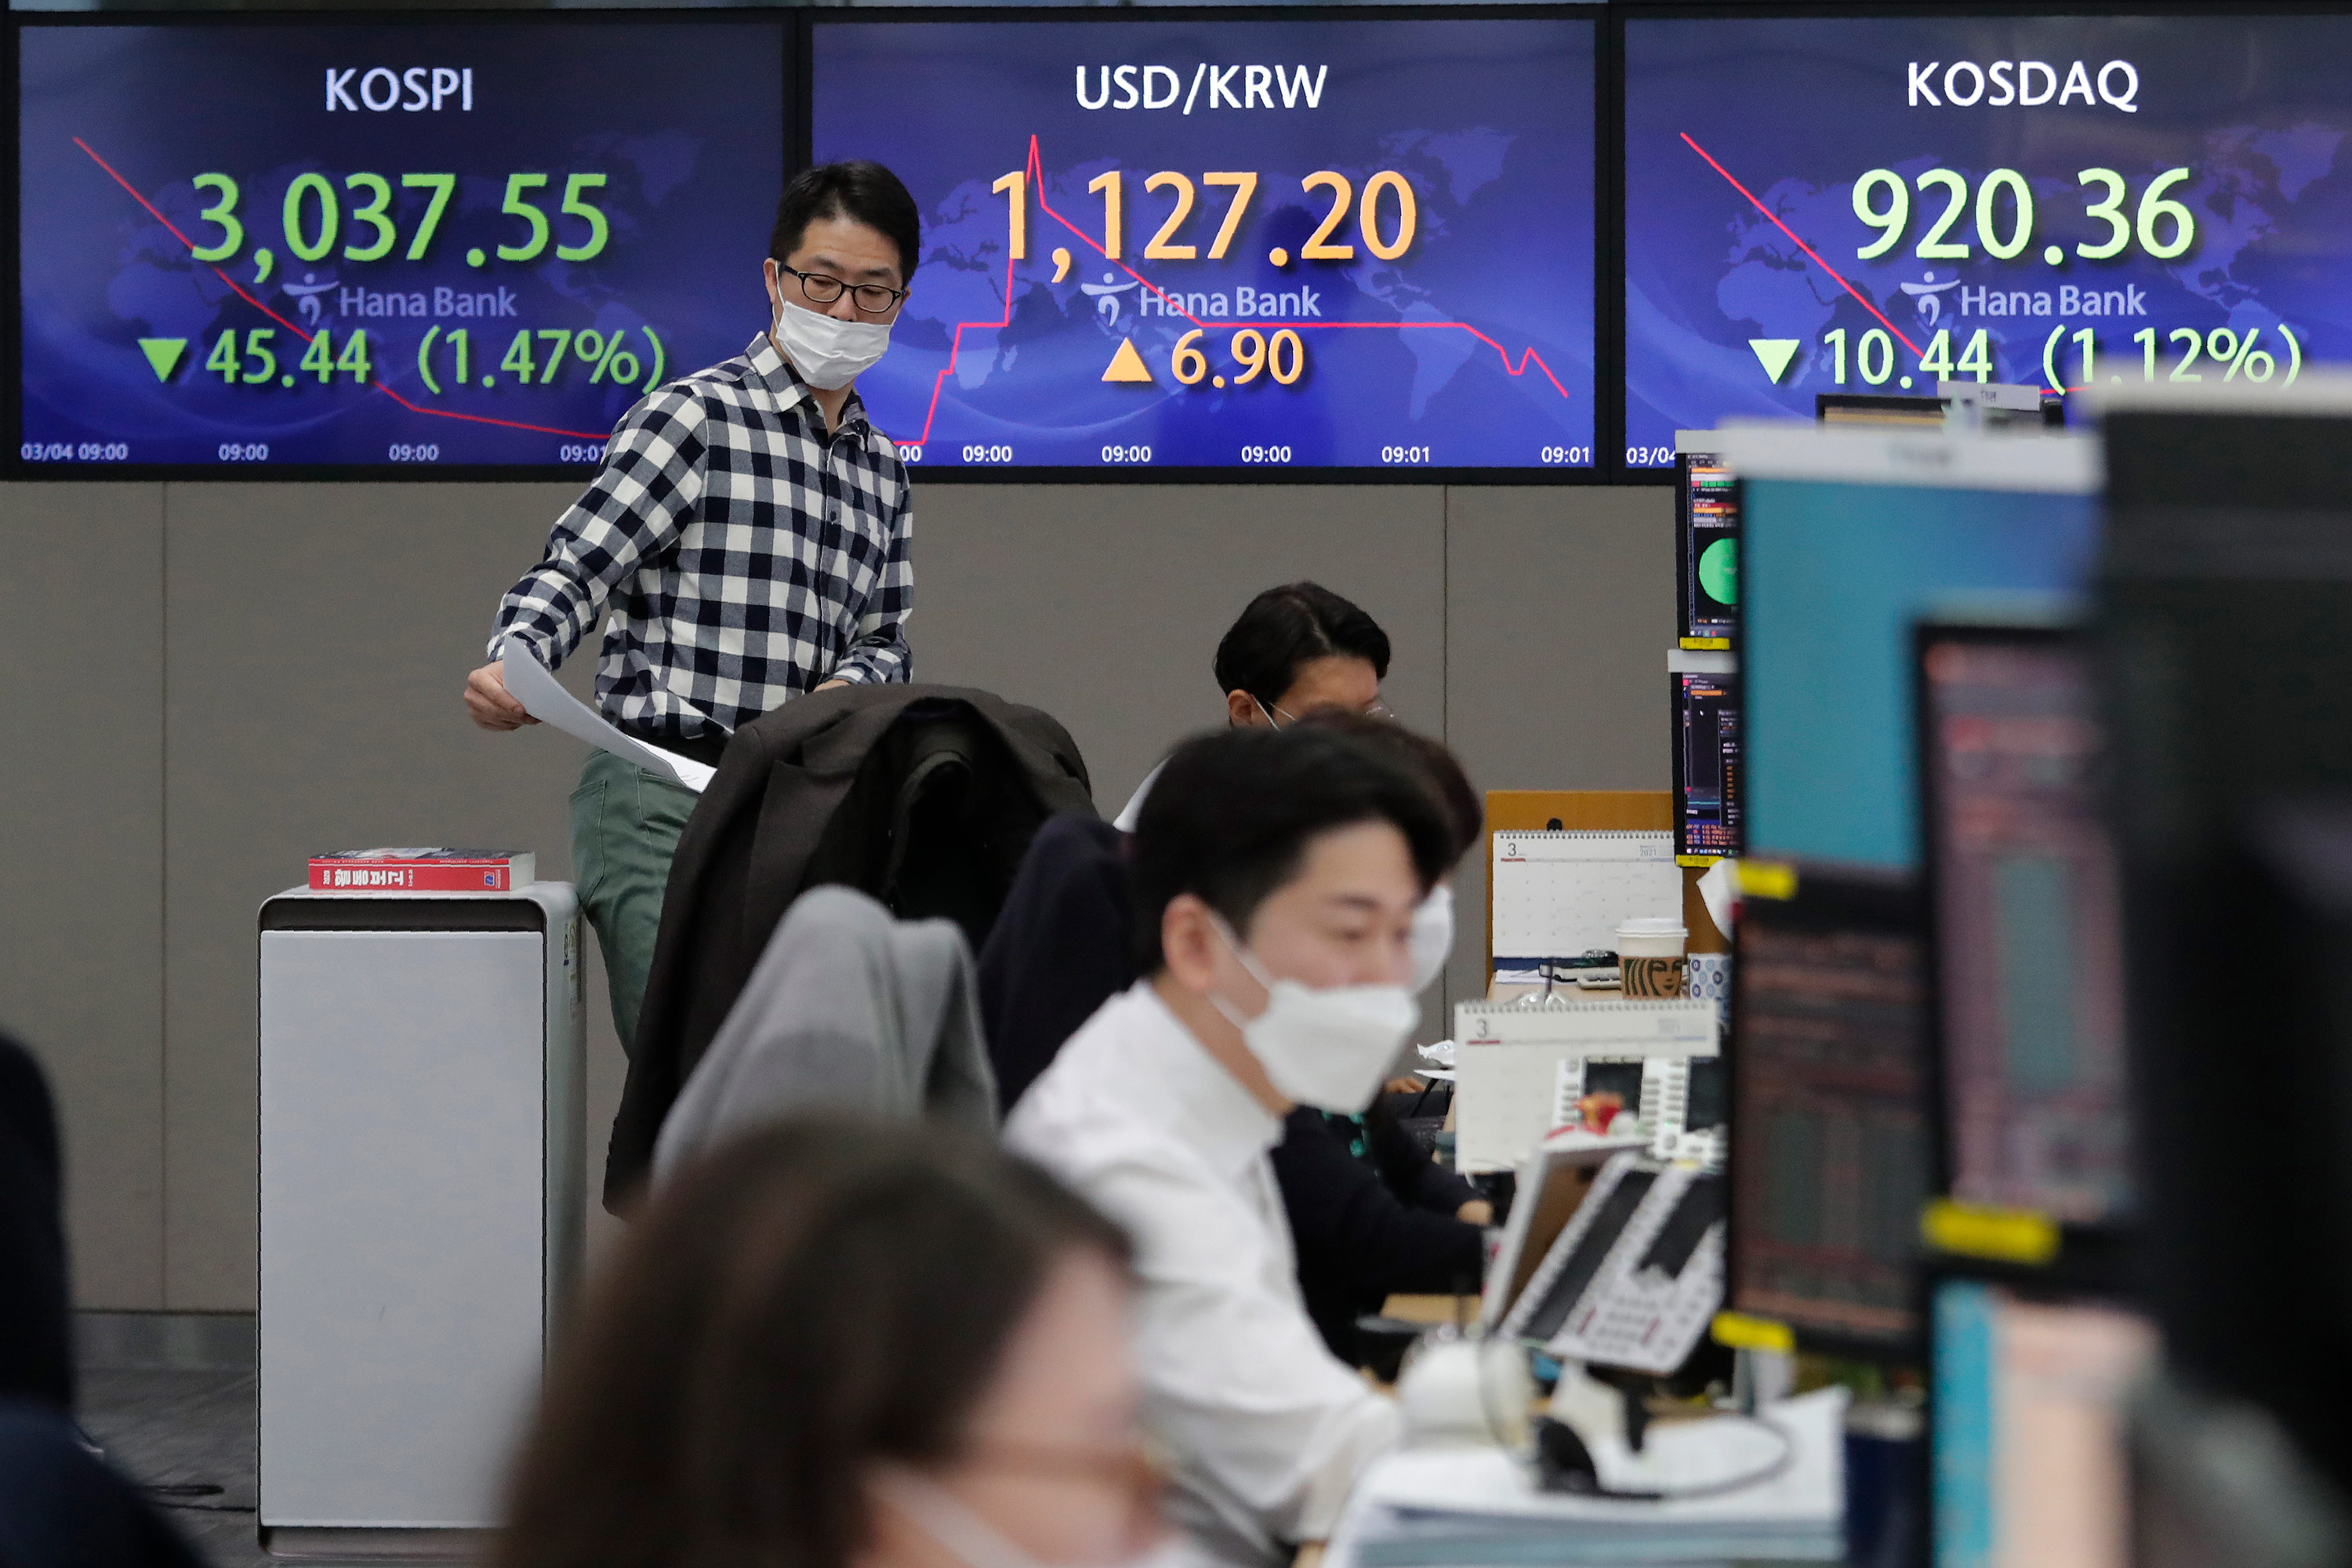 Inflation fears continue to rattle global stocks